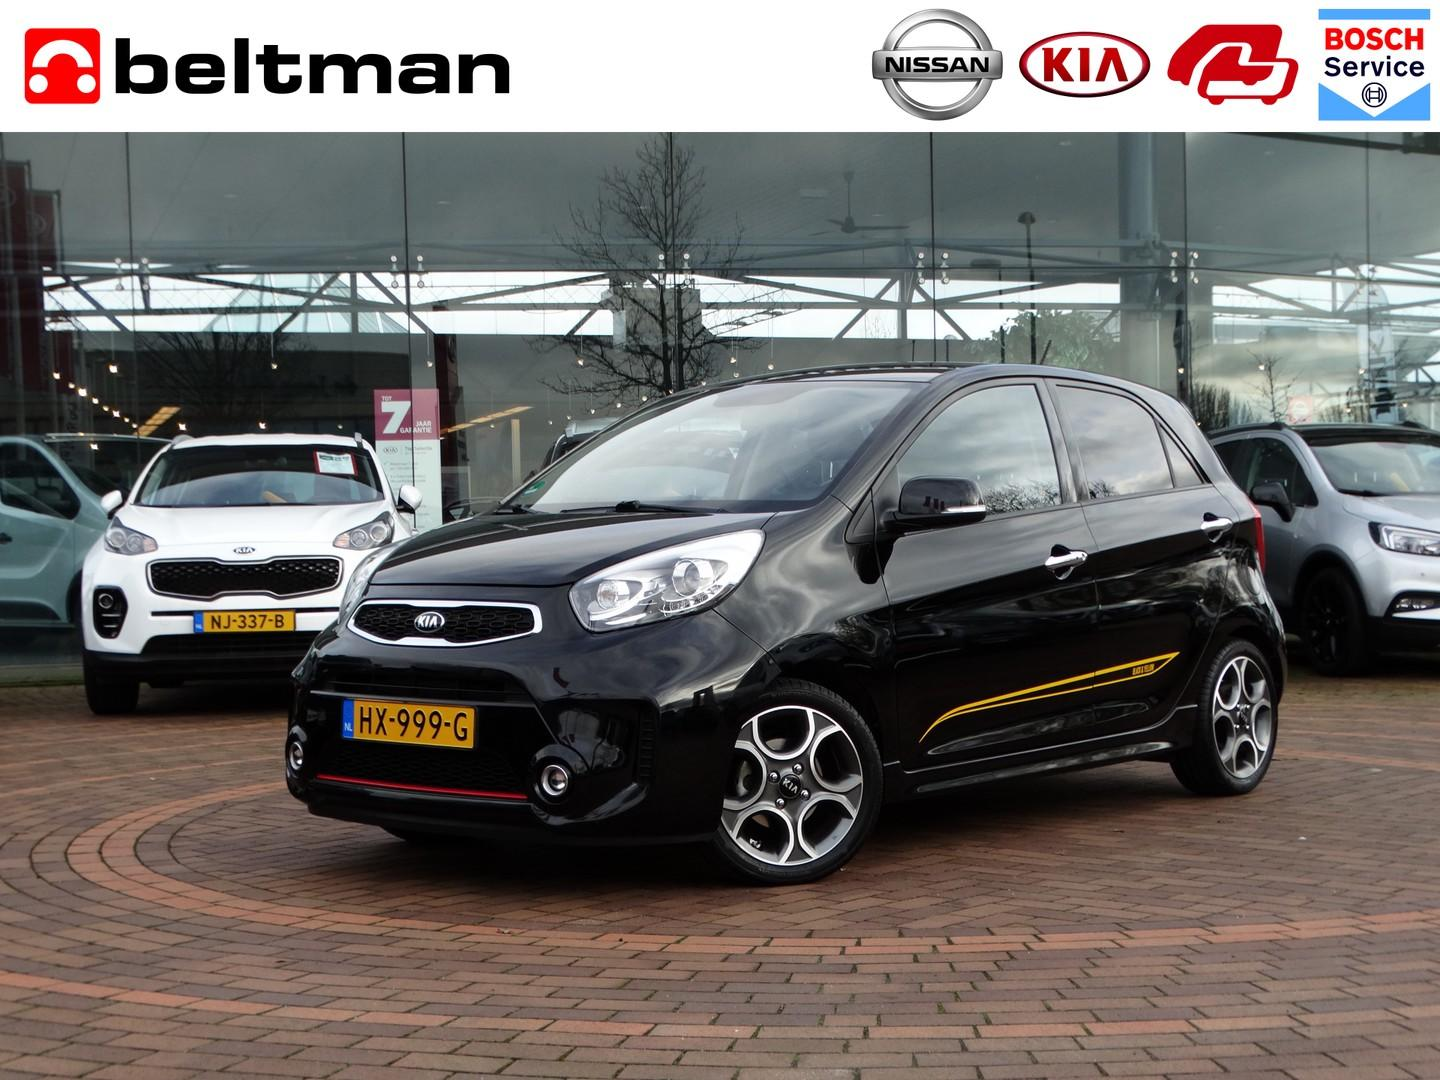 Kia Picanto 1.2 cvvt sportsline black & yellow edition 9/50